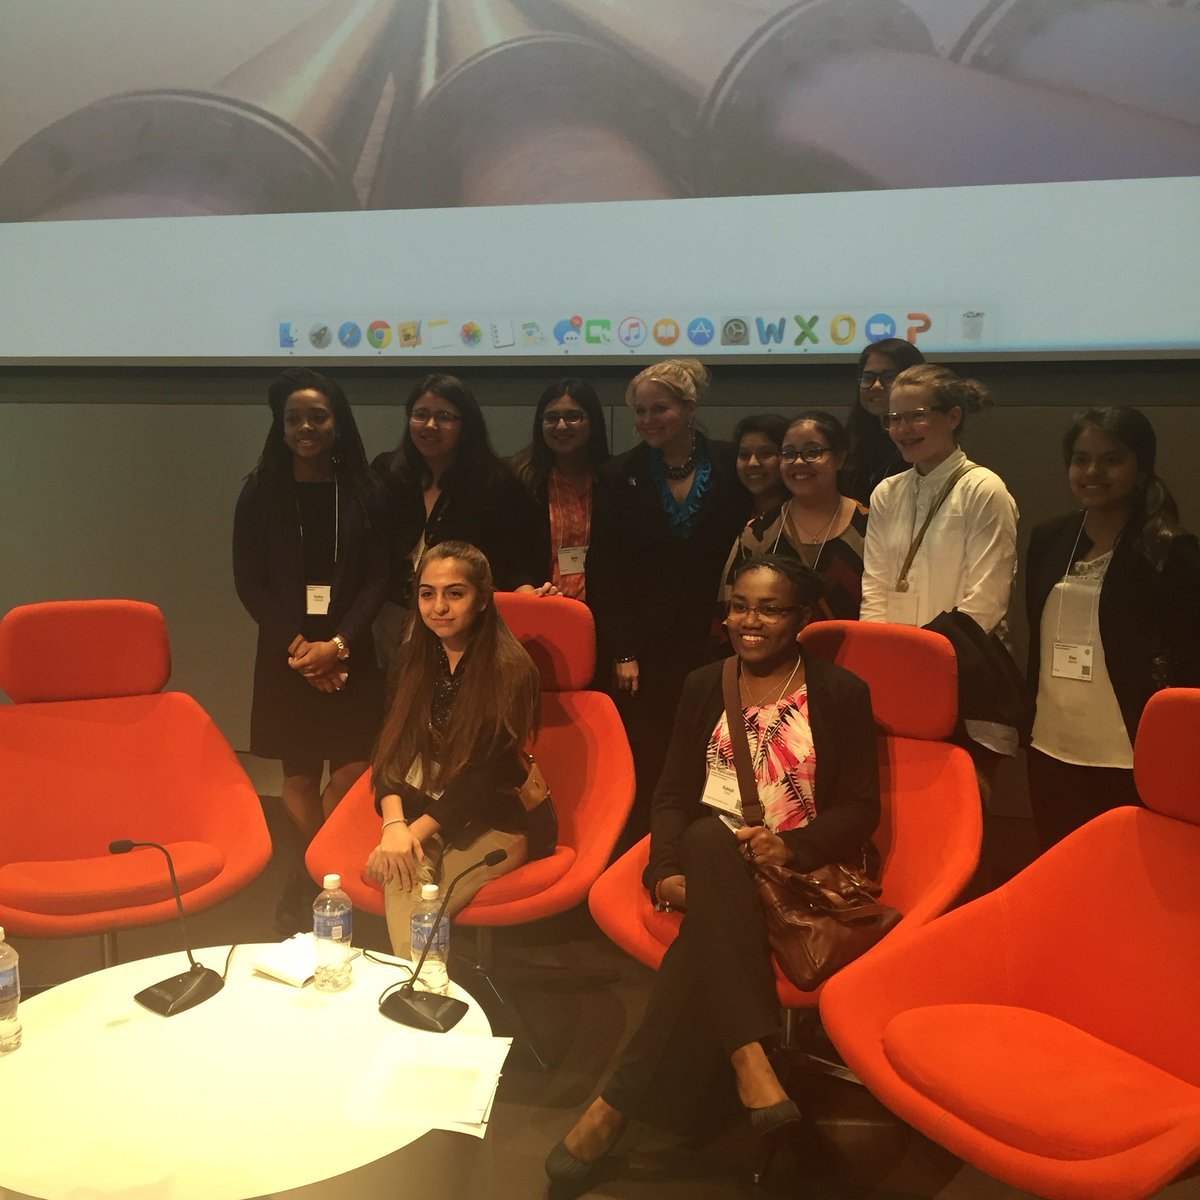 The #nextGEN of #energy leaders @ #HERWorld16 - inspiring! https://t.co/EmAqBYIrl2